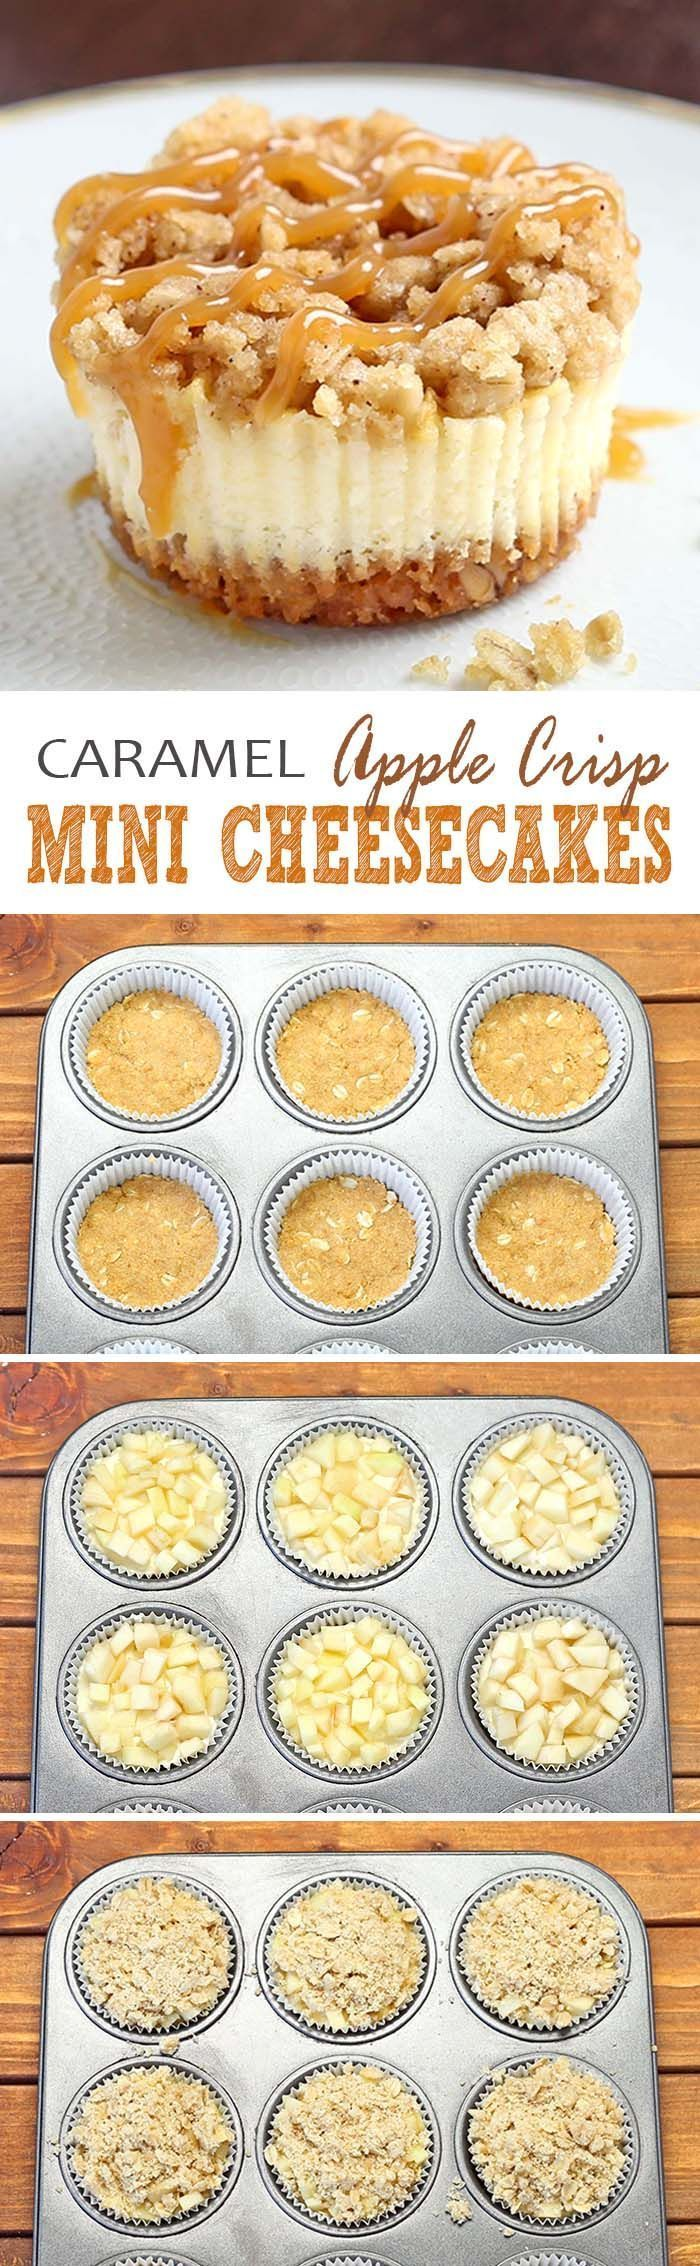 Caramel Apple Crisp Mini Cheesecakes All of the sweet and caramely goodness of a traditional apple crisp, baked on graham cracker crust cheesecake packed into perfect portable fall dessert – Caramel Apple Crisp Mini Cheesecakes.